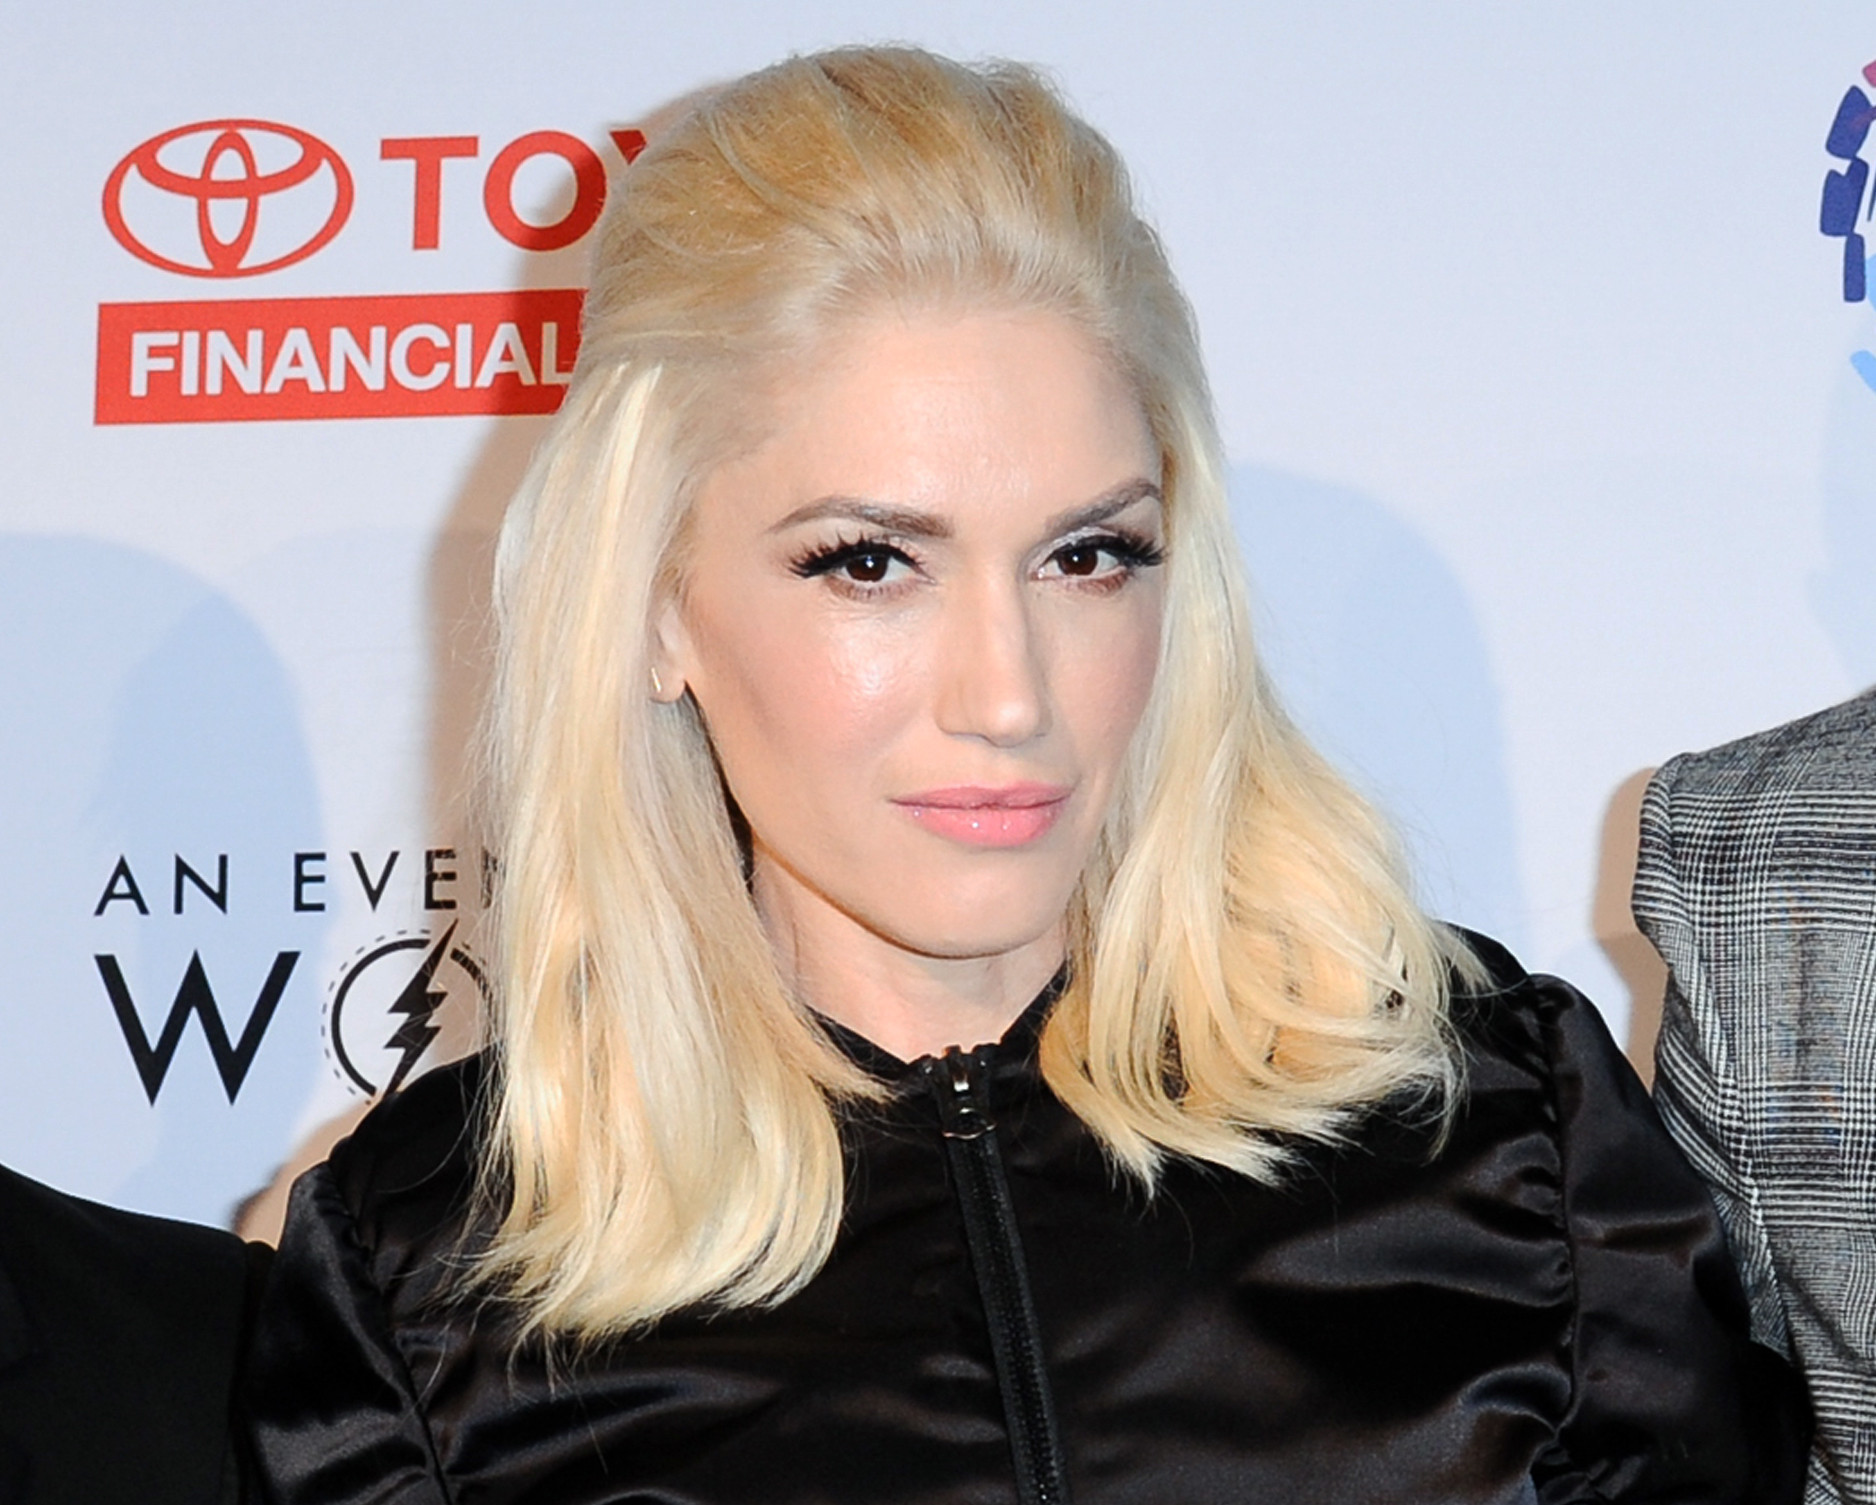 shelton personals Adam levine is dishing on his friends blake shelton and gwen stefani's relationship just ahead of the couple's two-year anniversary.